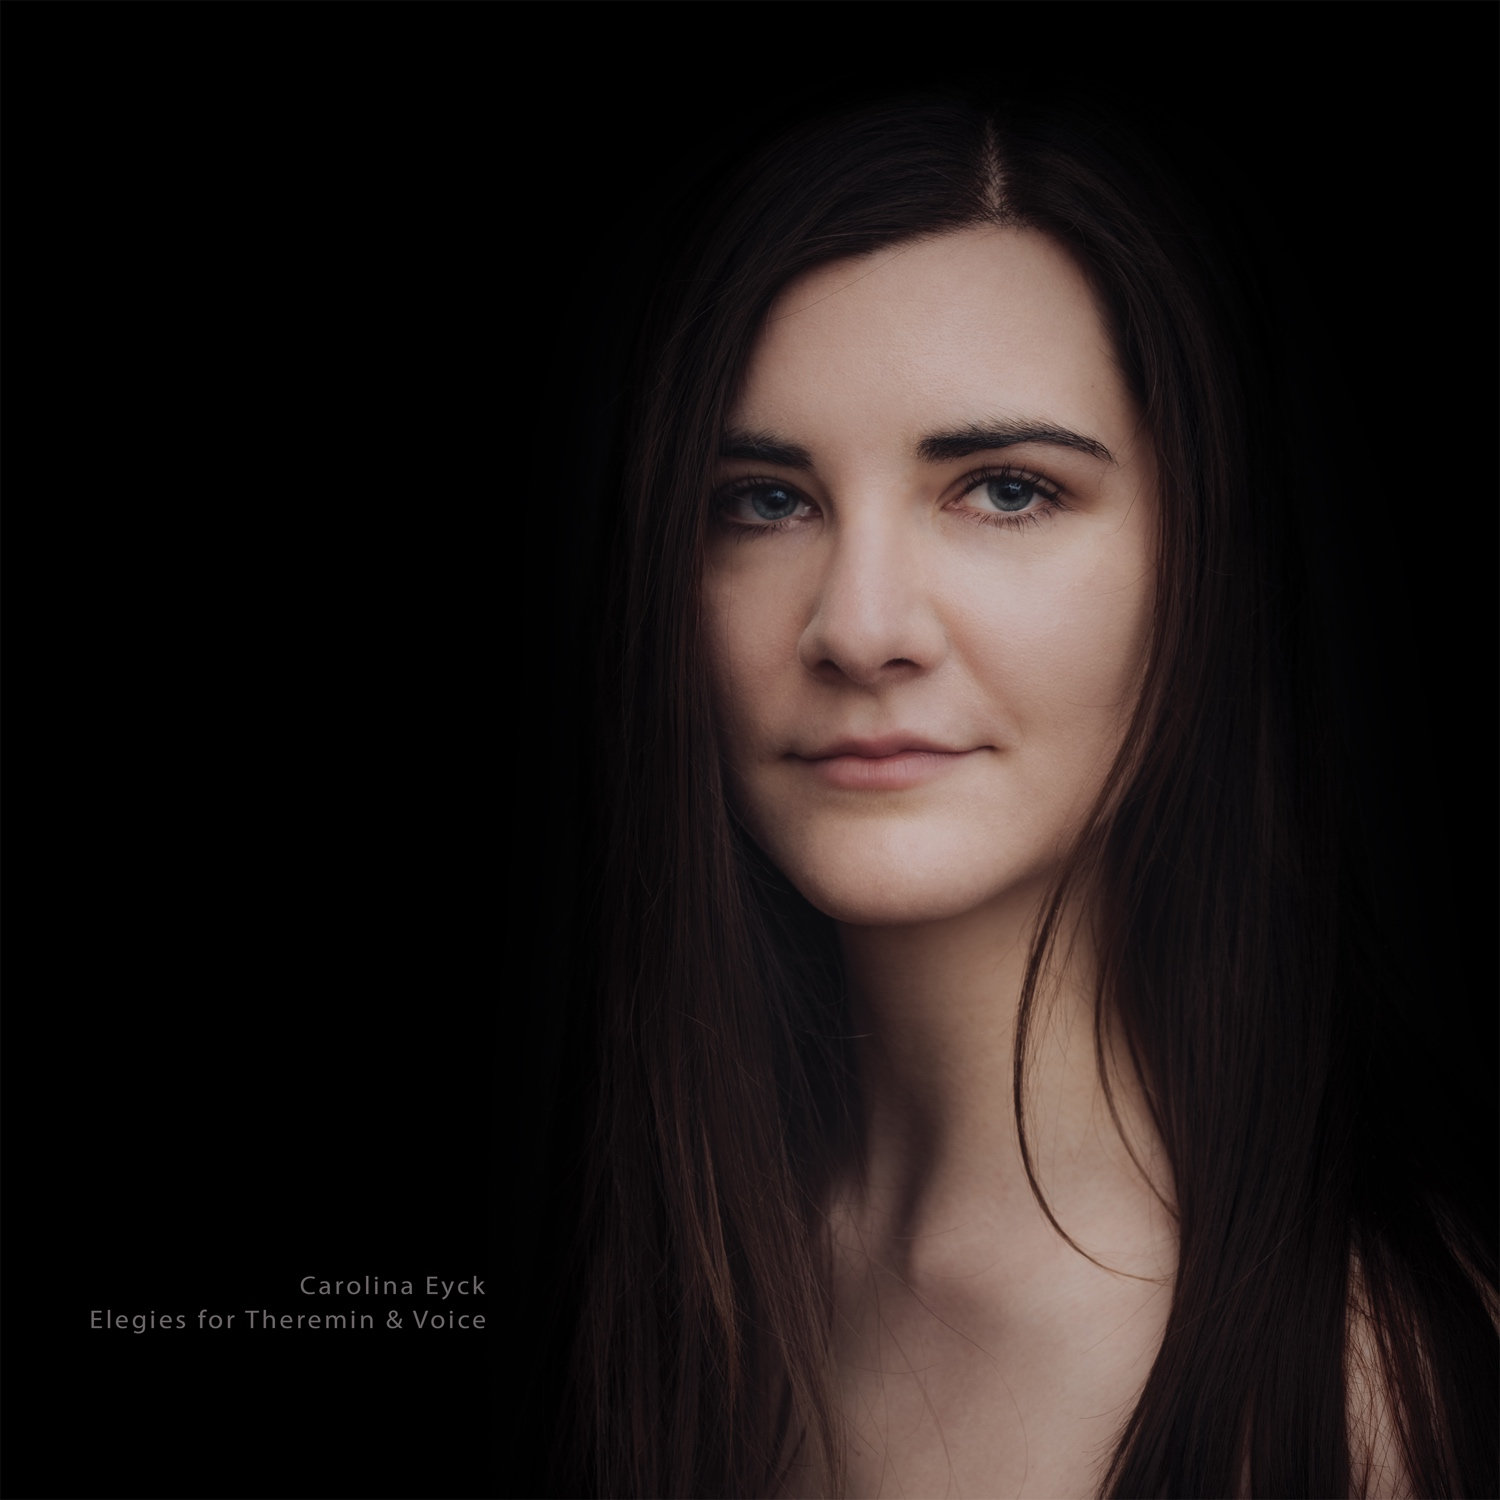 Carolina Eyck - Elegies for Theremin & Voice - Album cover